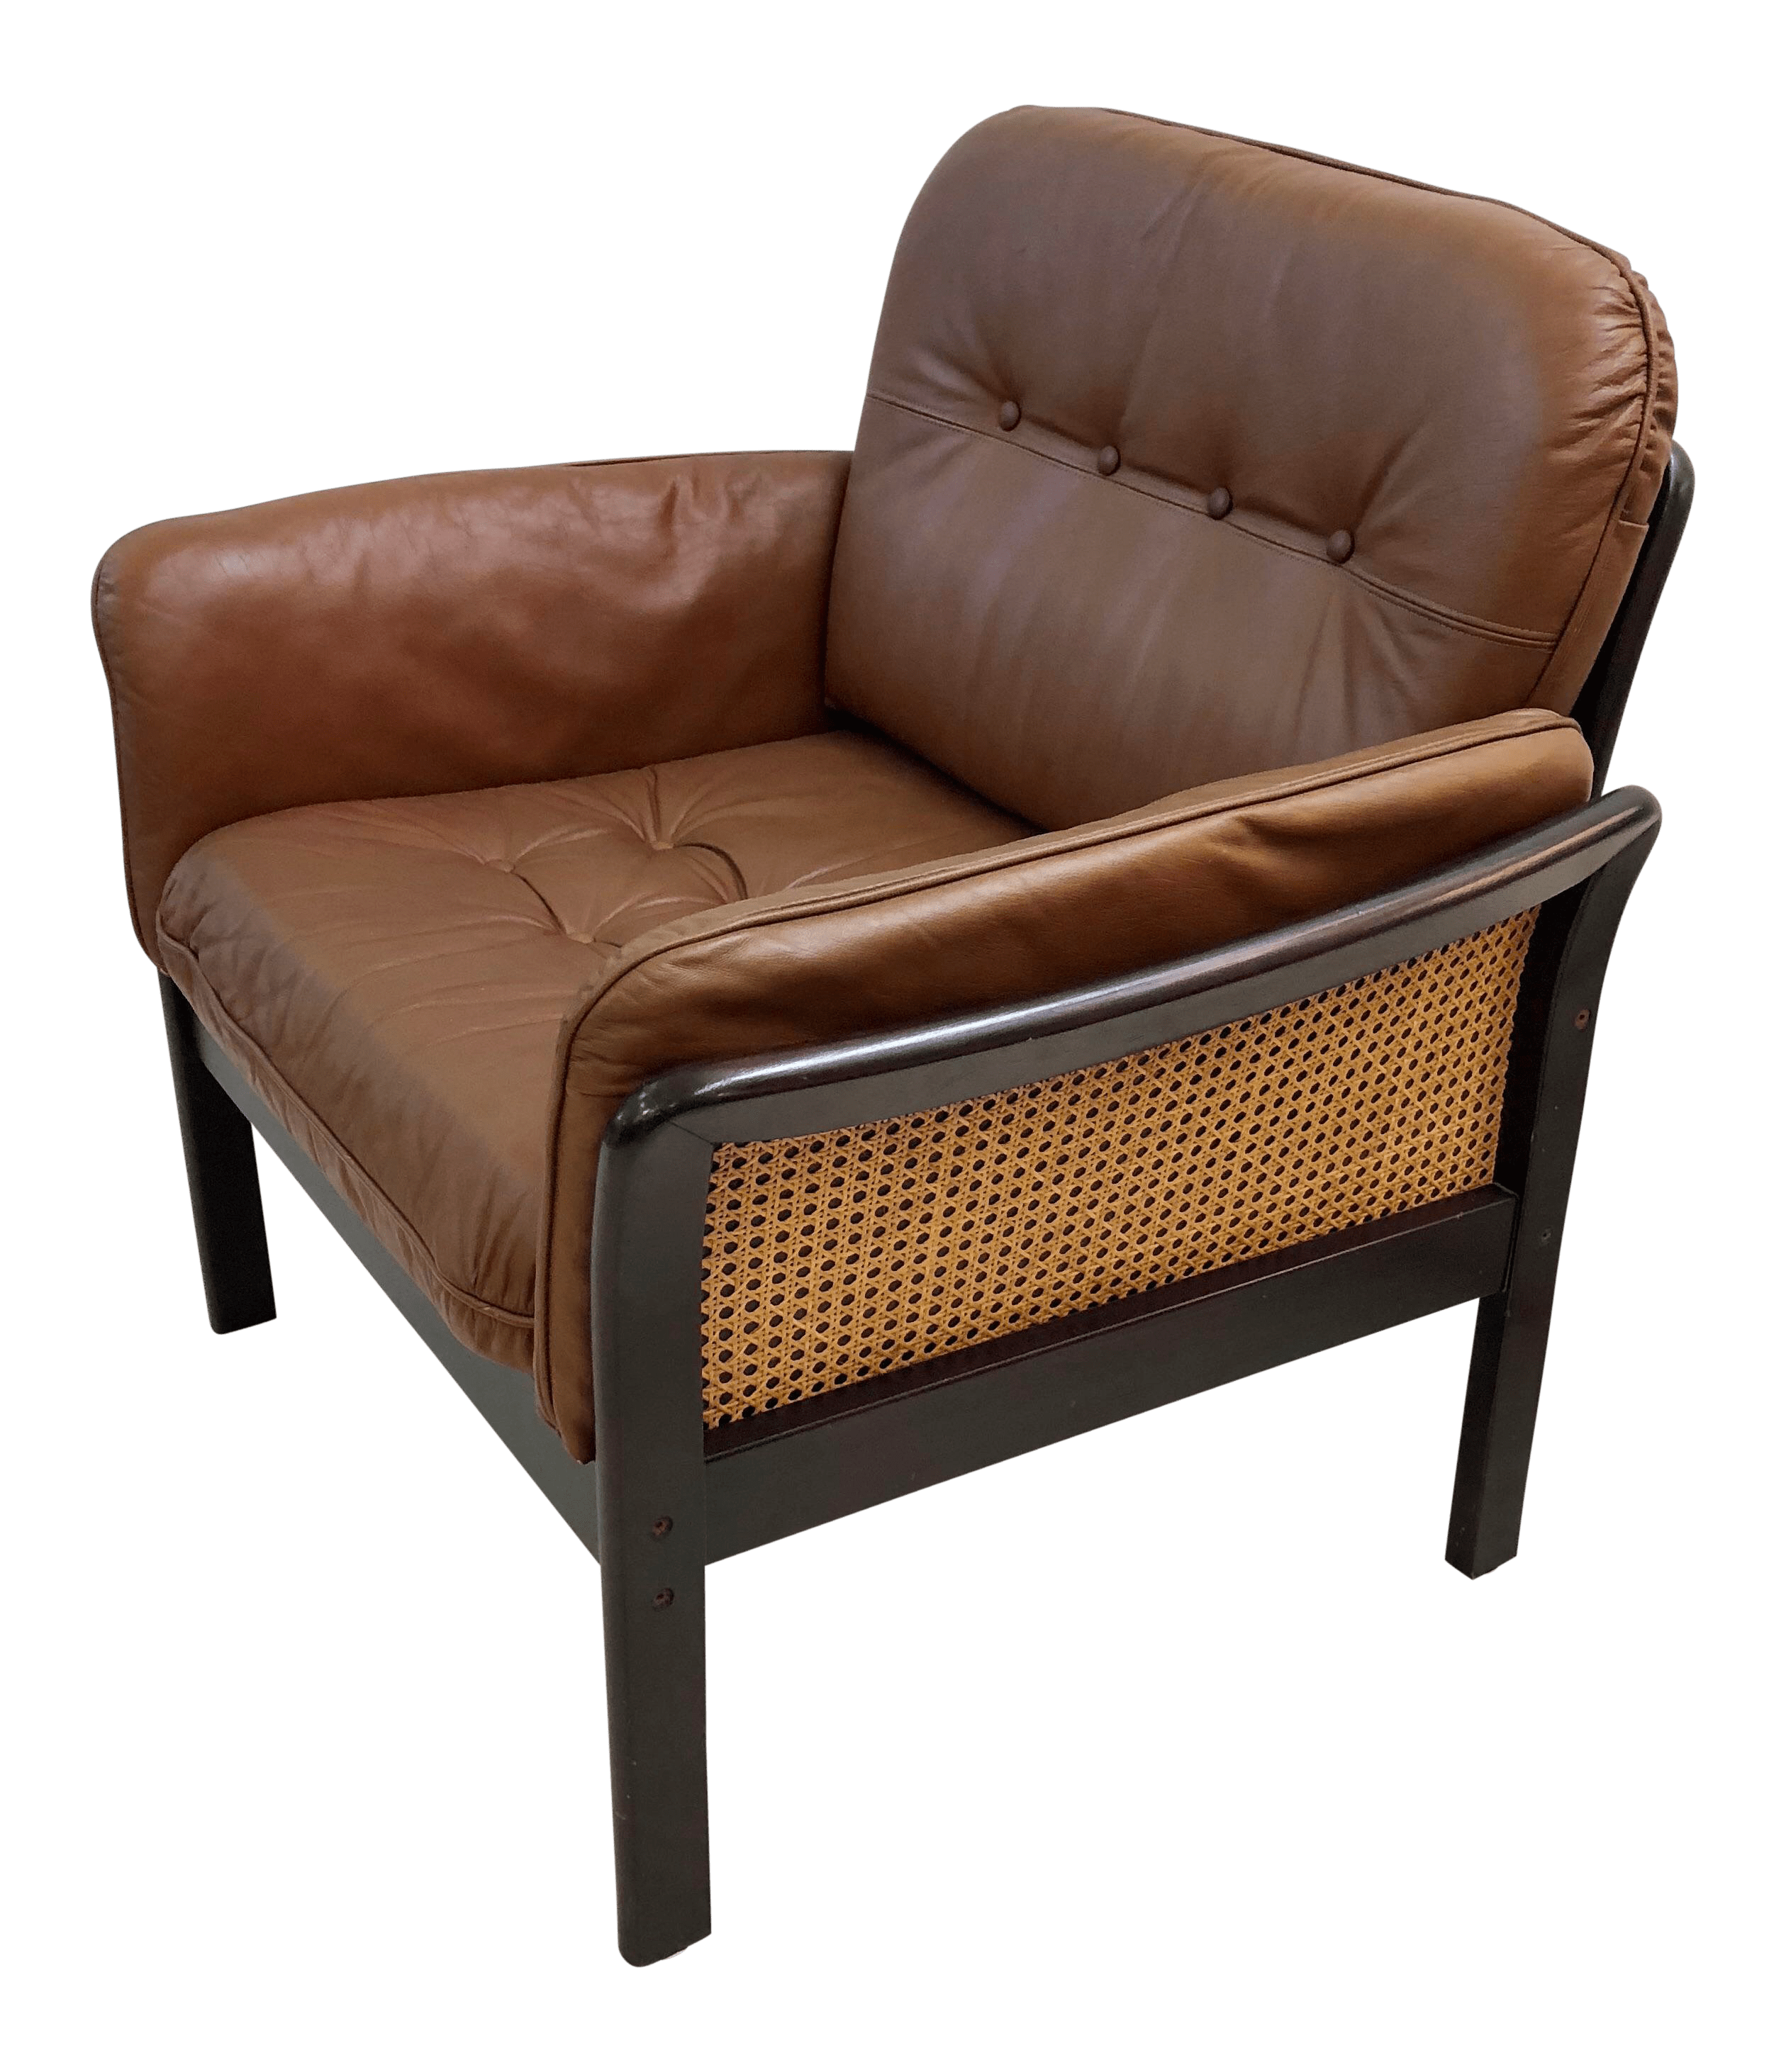 Leather Lounge Mid Century Danish Leather Lounge Chair